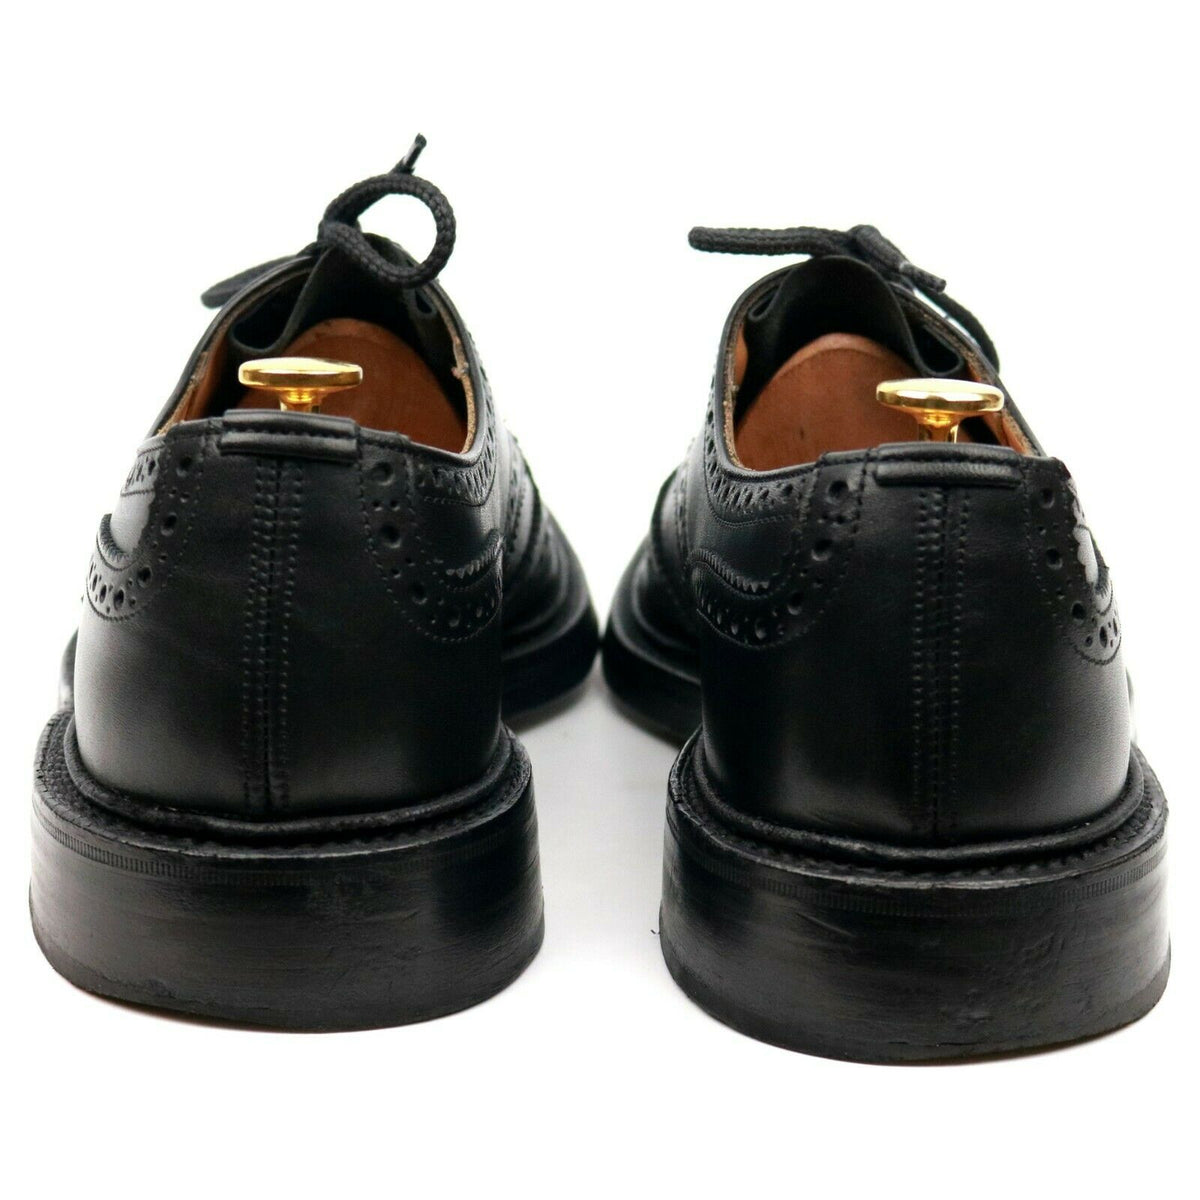 Tricker's 'Keswick' Black Leather Country Derby Brogues UK 9